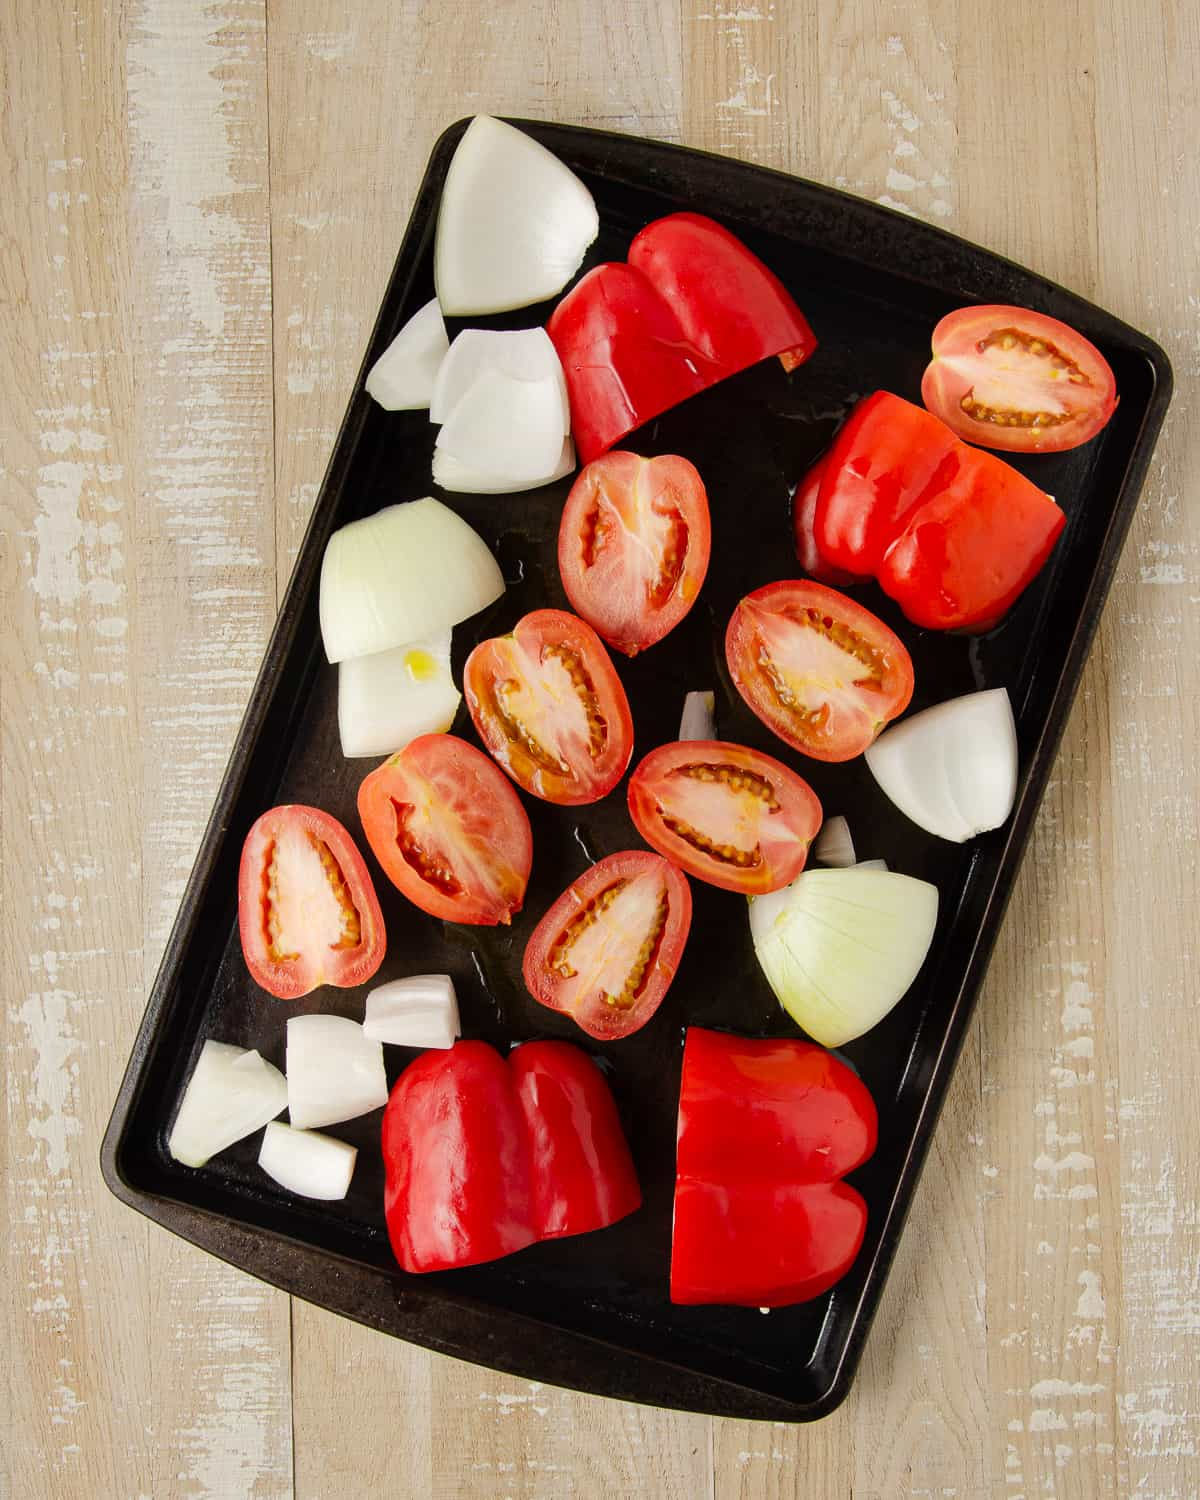 Red bell peppers, onion, and roma tomatoes on a baking sheet before roasting.